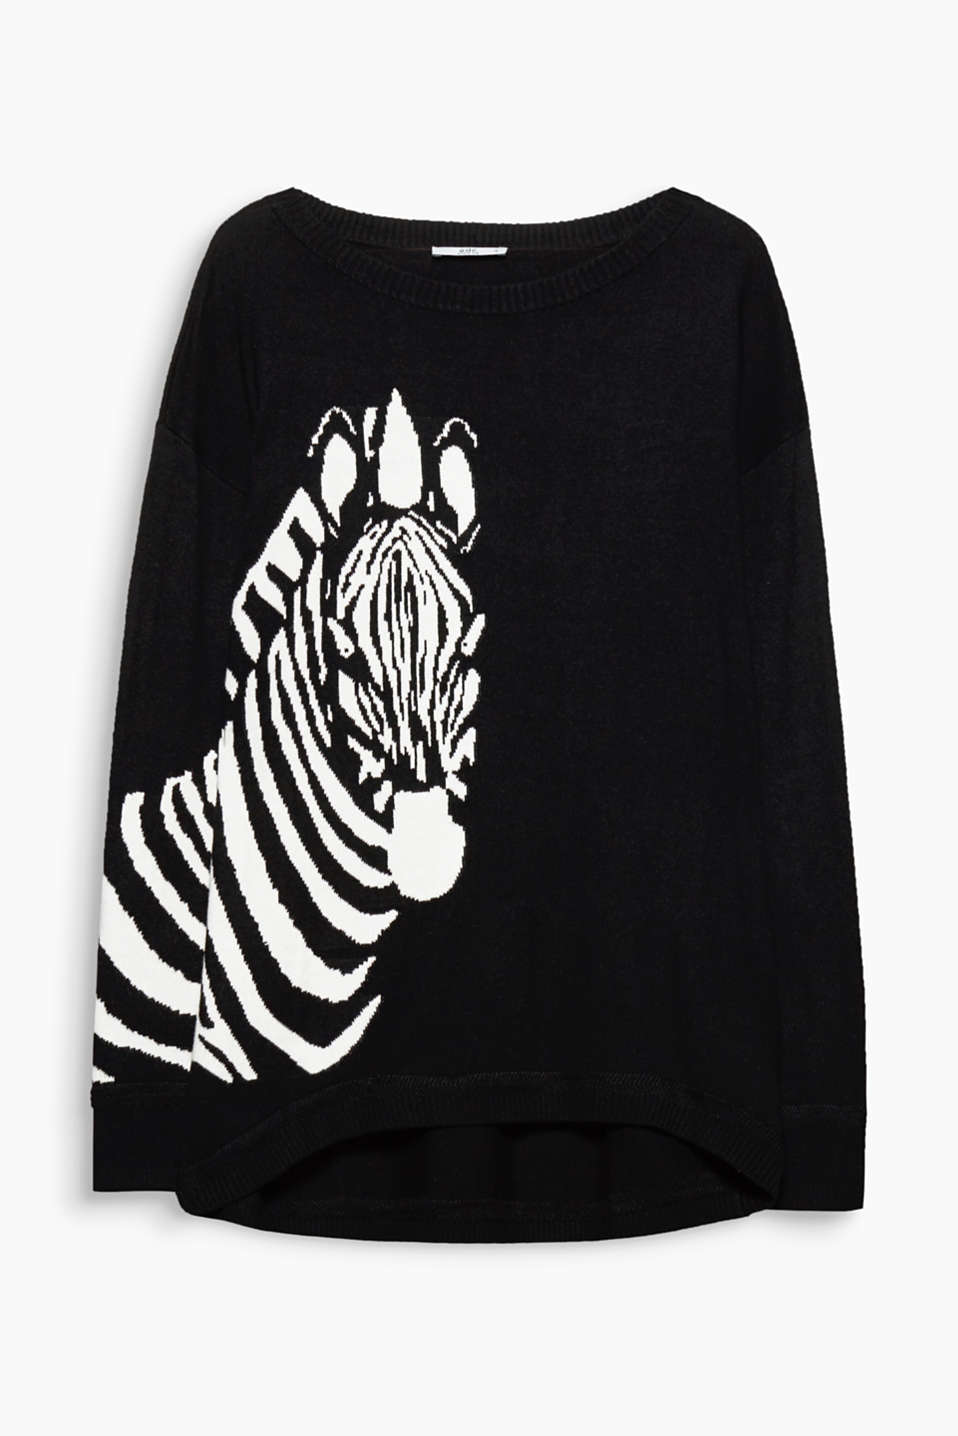 The large tiger head intarsia gives this blended cotton jumper a wild vibe.